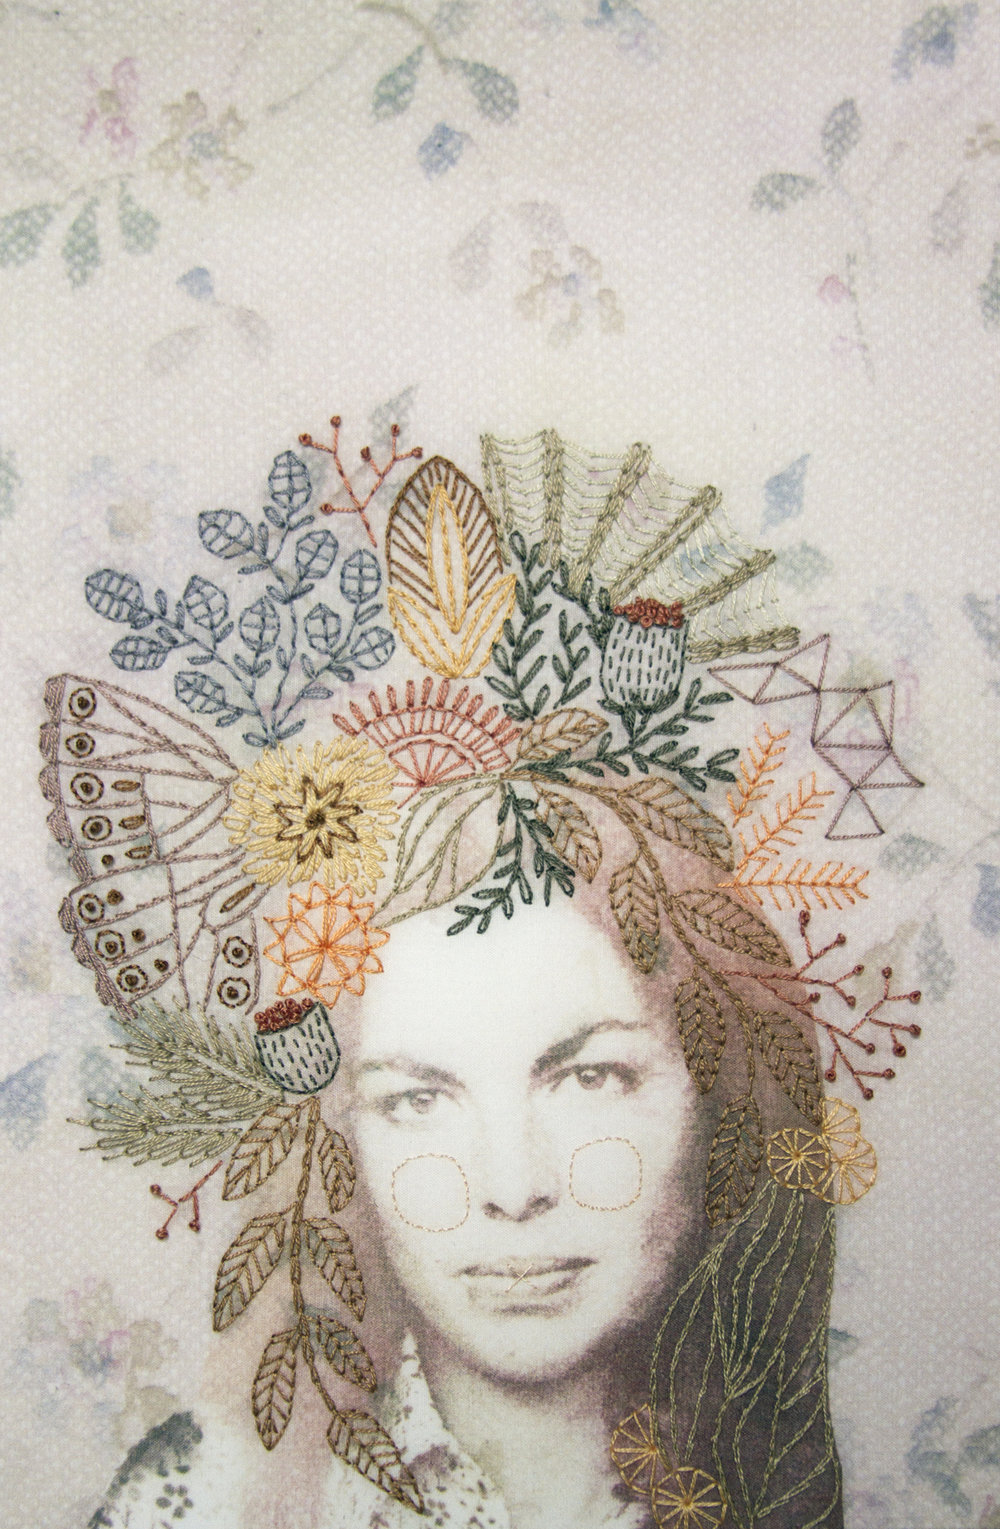 "Audra, Fabric, inkjet dye‑based ink, embroidery floss, 13"" x 9"" x 1.5"""